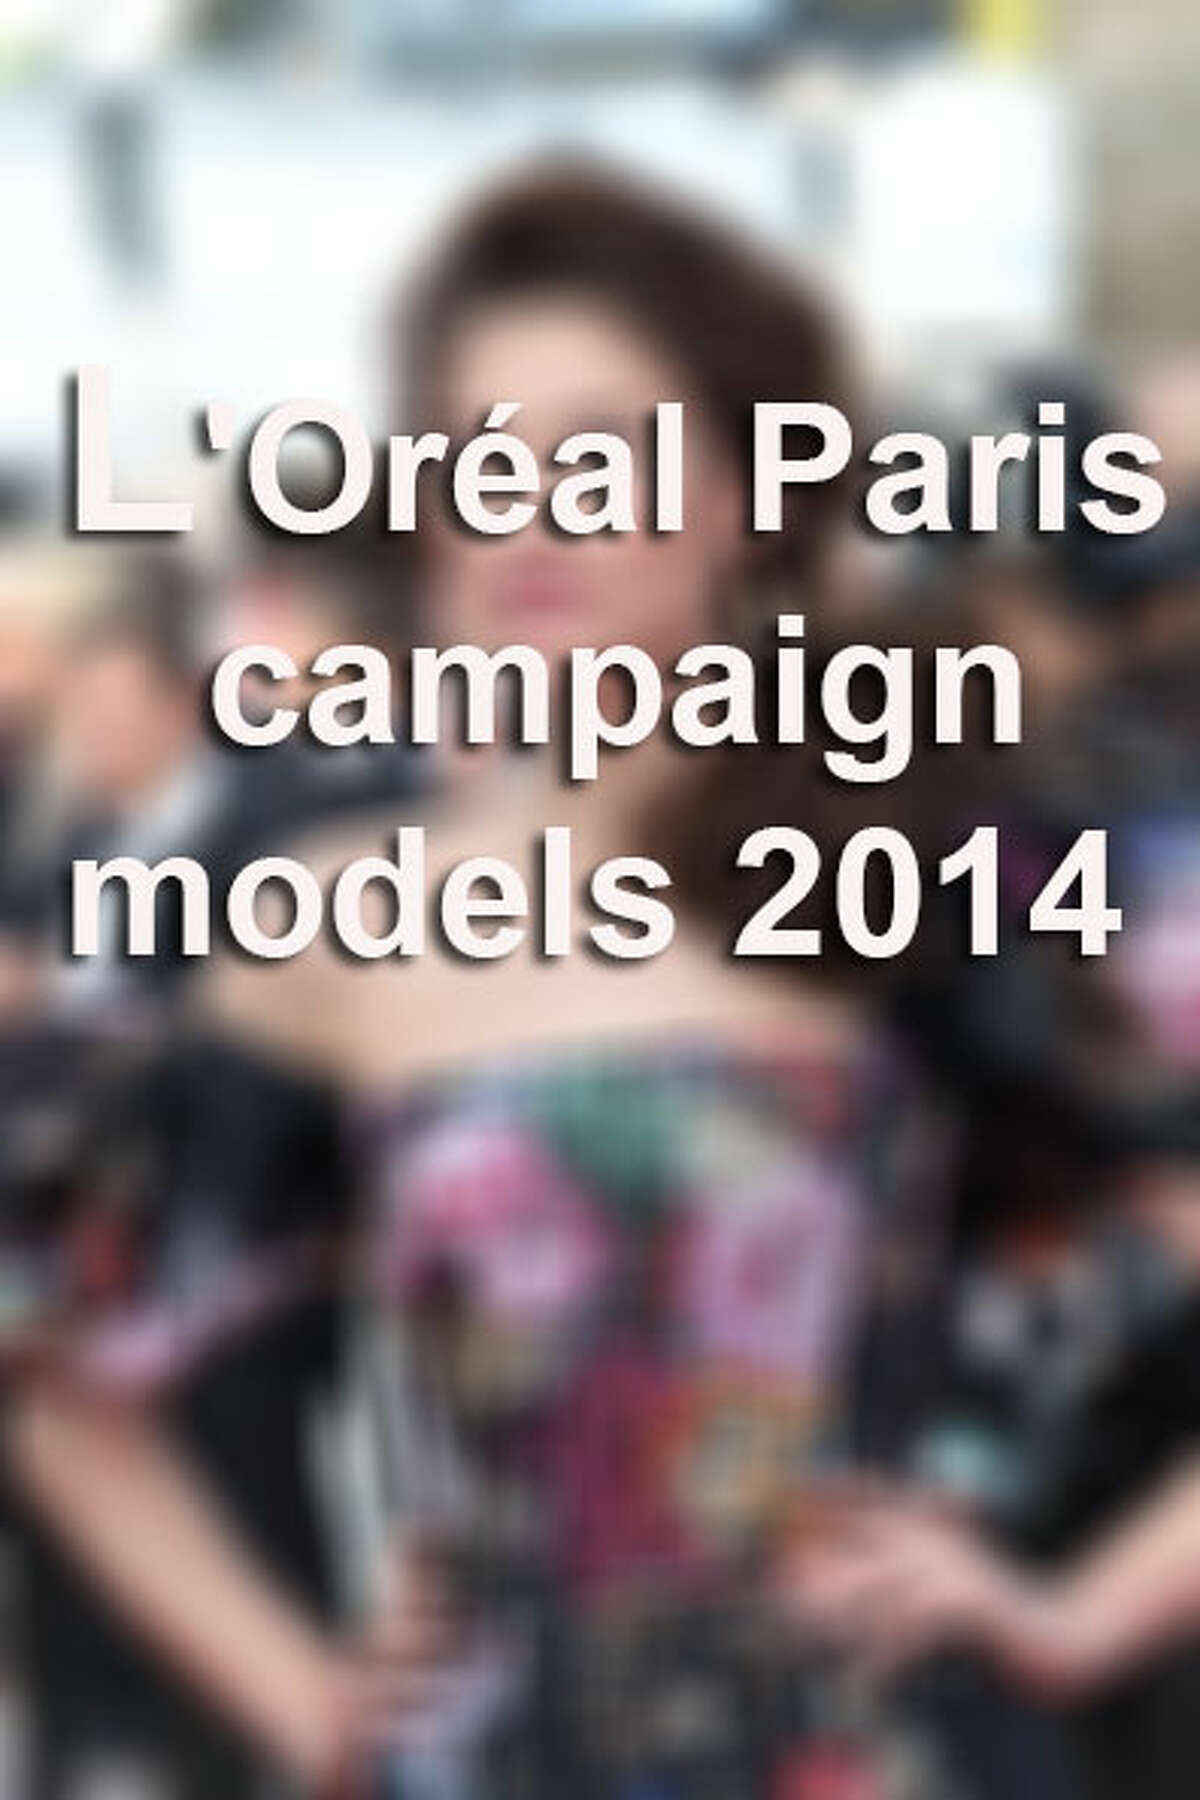 The L'Oreal Paris cosmetics and beauty company spokespeople have a subtle blend of sensuality and glamour that captivate and inspire all races and ethnicities. Here is a list of the campaign models in 2014.